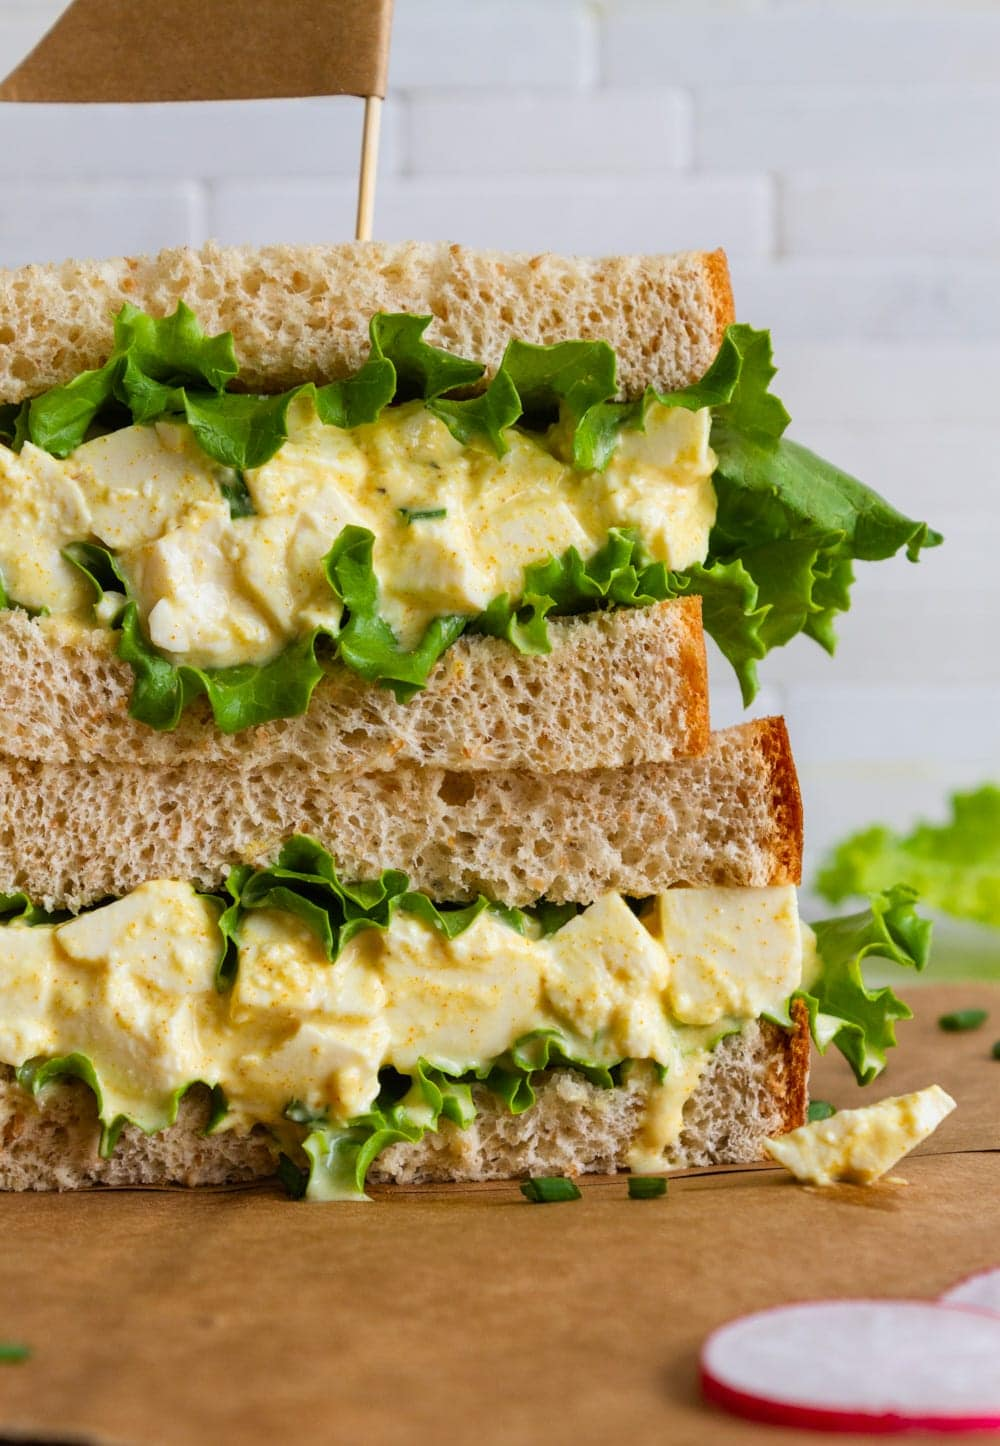 head on view of vegan egg salad sandwich with leafy greens sliced in half and stacked.